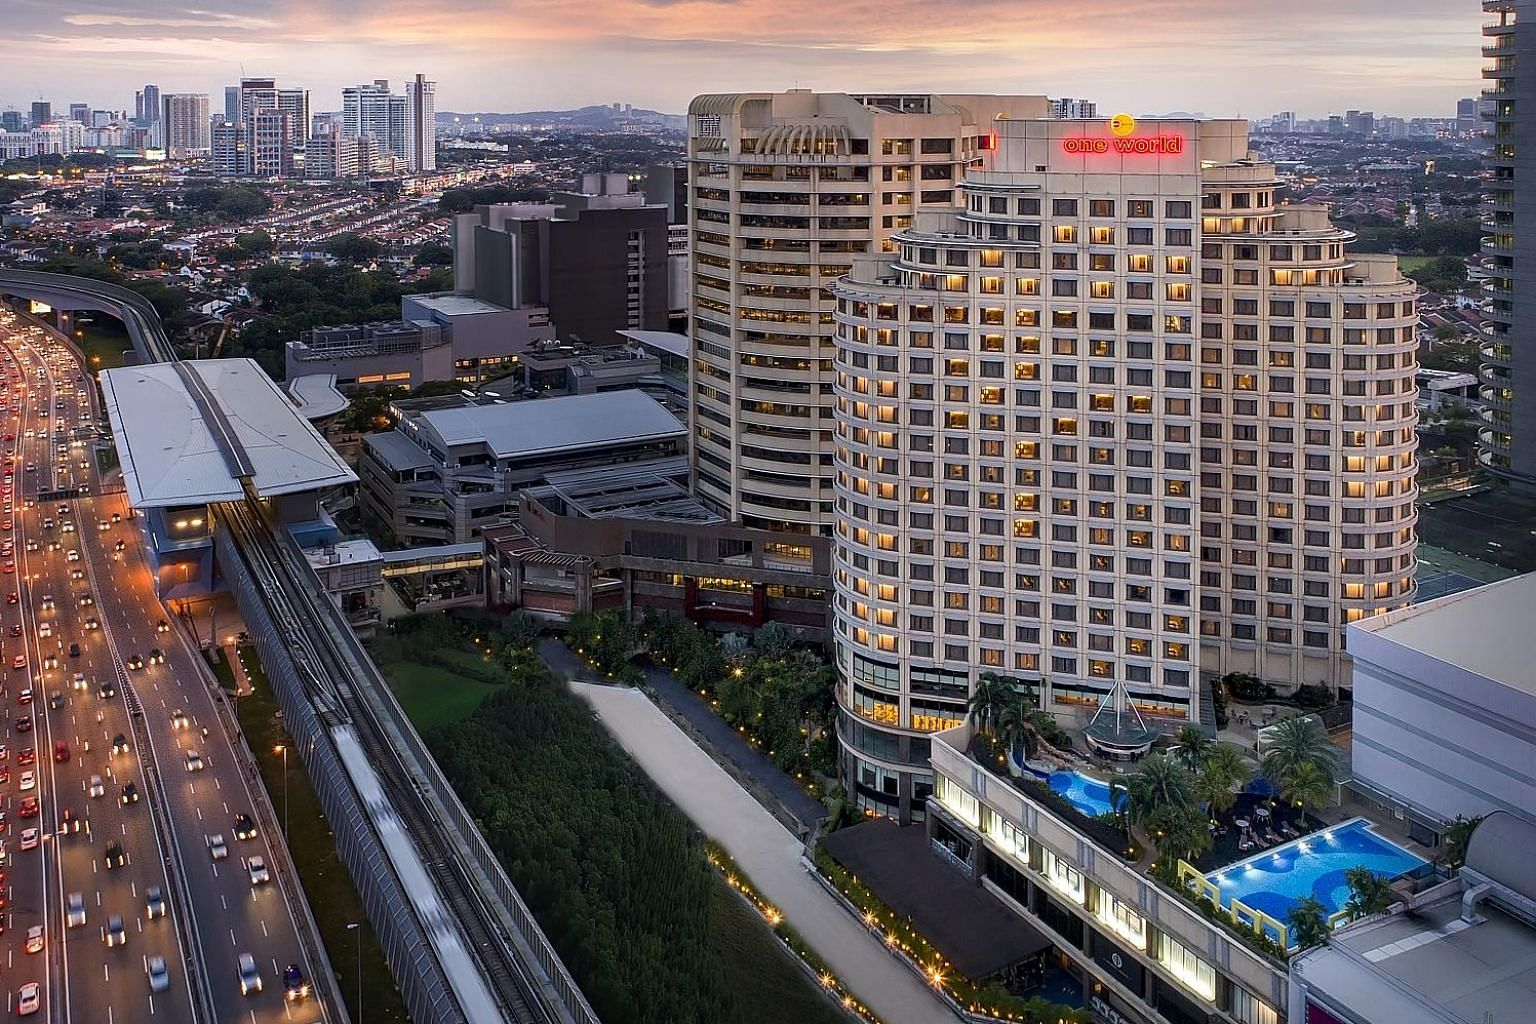 The five-star One World Hotel in Petaling Jaya, Malaysia, has been named the World's Leading Meeting and Conference Hotel at the 25th World Travel Awards. The event was held earlier this month in Lisbon, Portugal. The hotel's general manager, Mr Chri